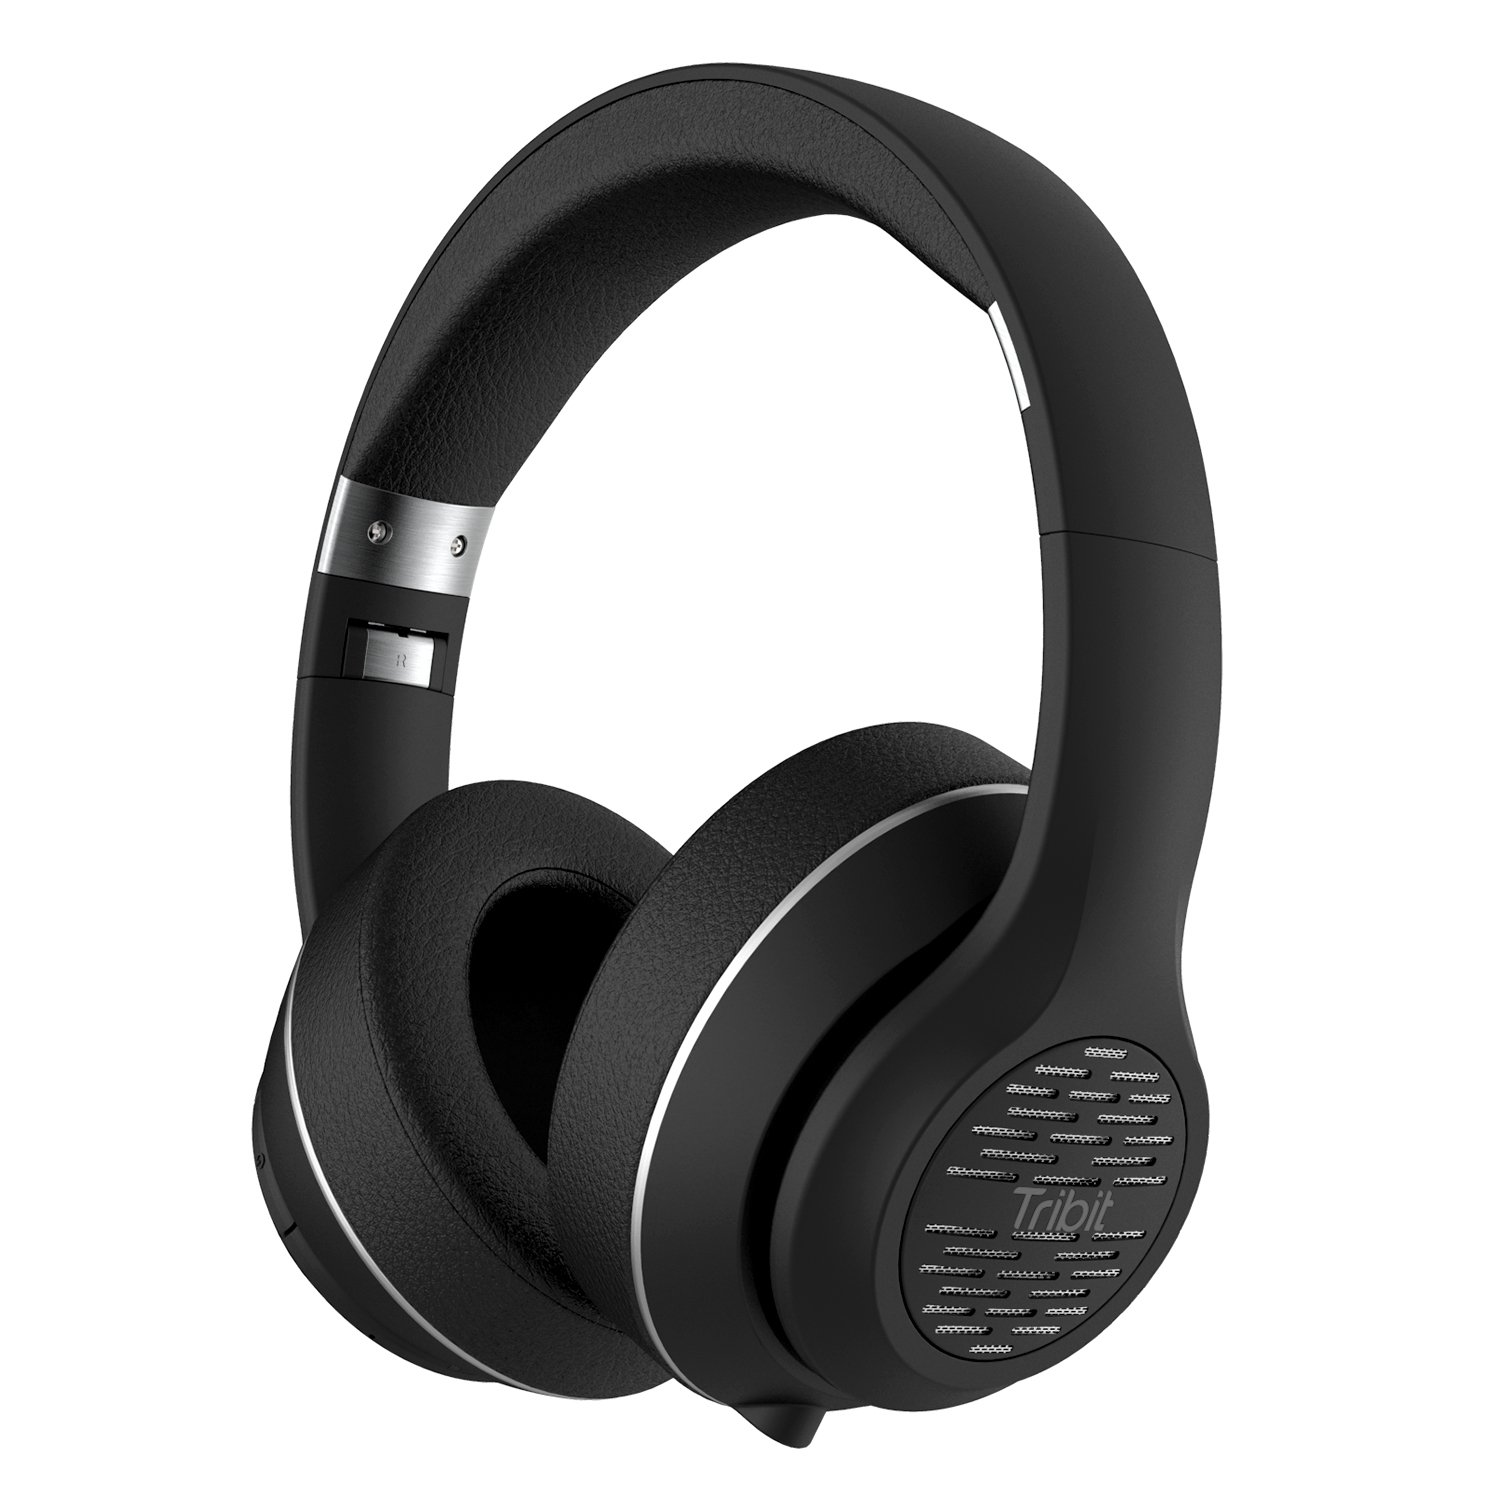 ویکالا · خرید  اصل اورجینال · خرید از آمازون · Tribit XFree Tune Bluetooth Headphones Over Ear - Wireless Headphones 40 Hrs Playtime, Hi-Fi Stereo Sound with Rich Bass, Built-in Mic, Soft Earmuffs - Foldable Headset with Carry Case, Black wekala · ویکالا